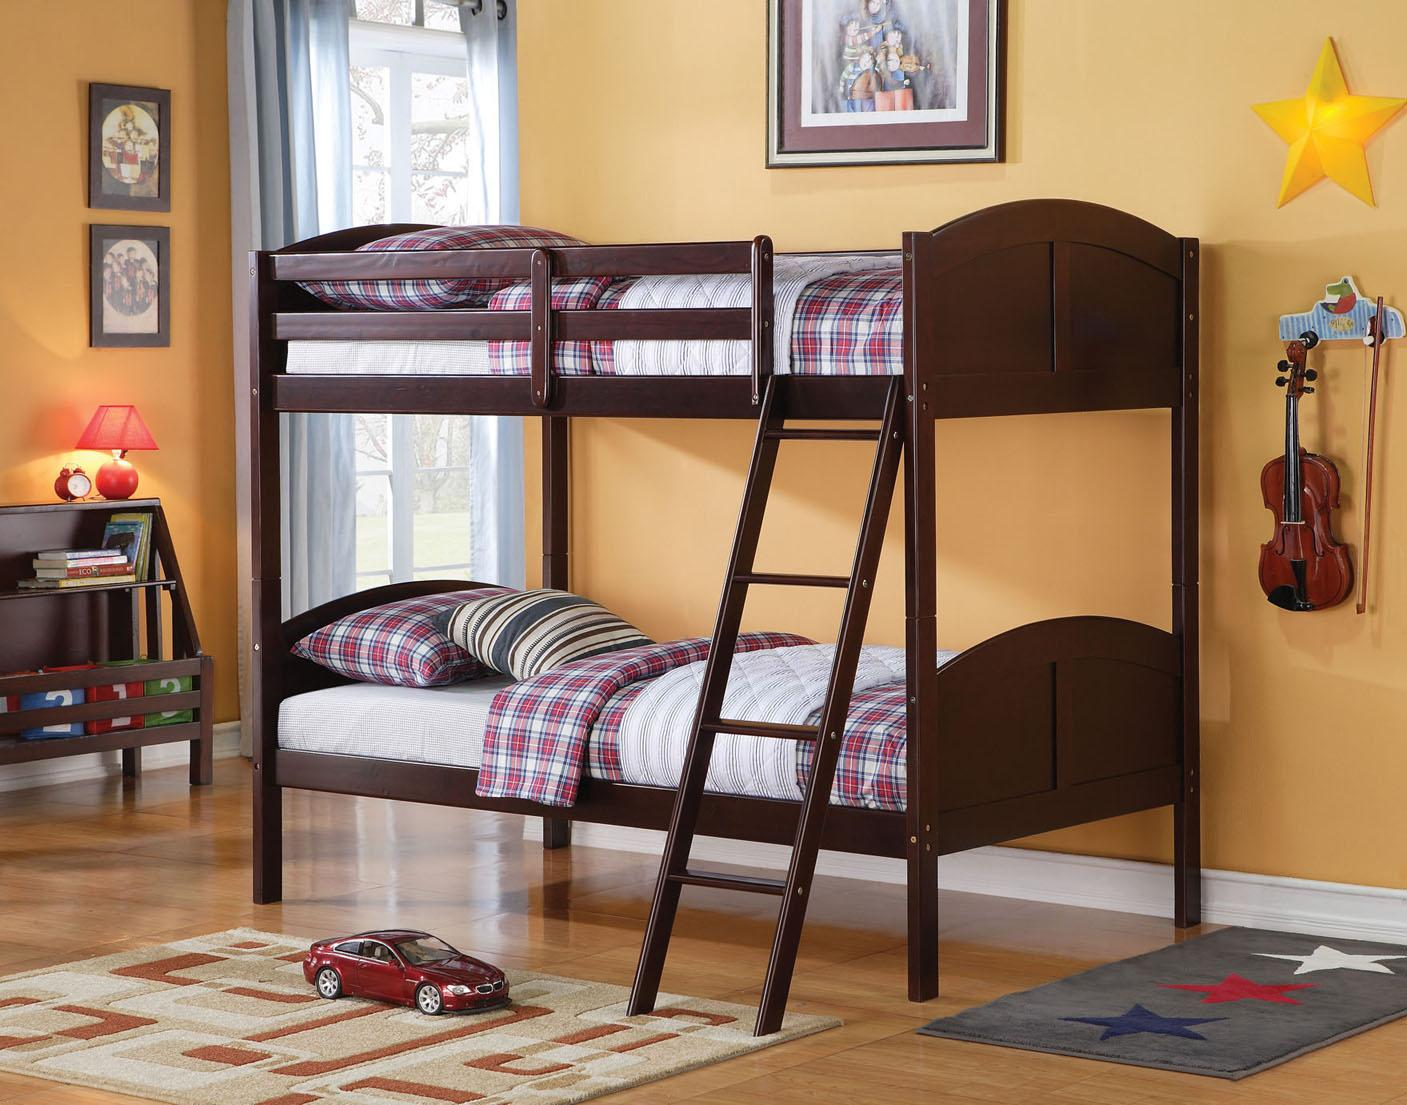 Acme Furniture Toshi Twin Bunk Bed - Item Number: 37010